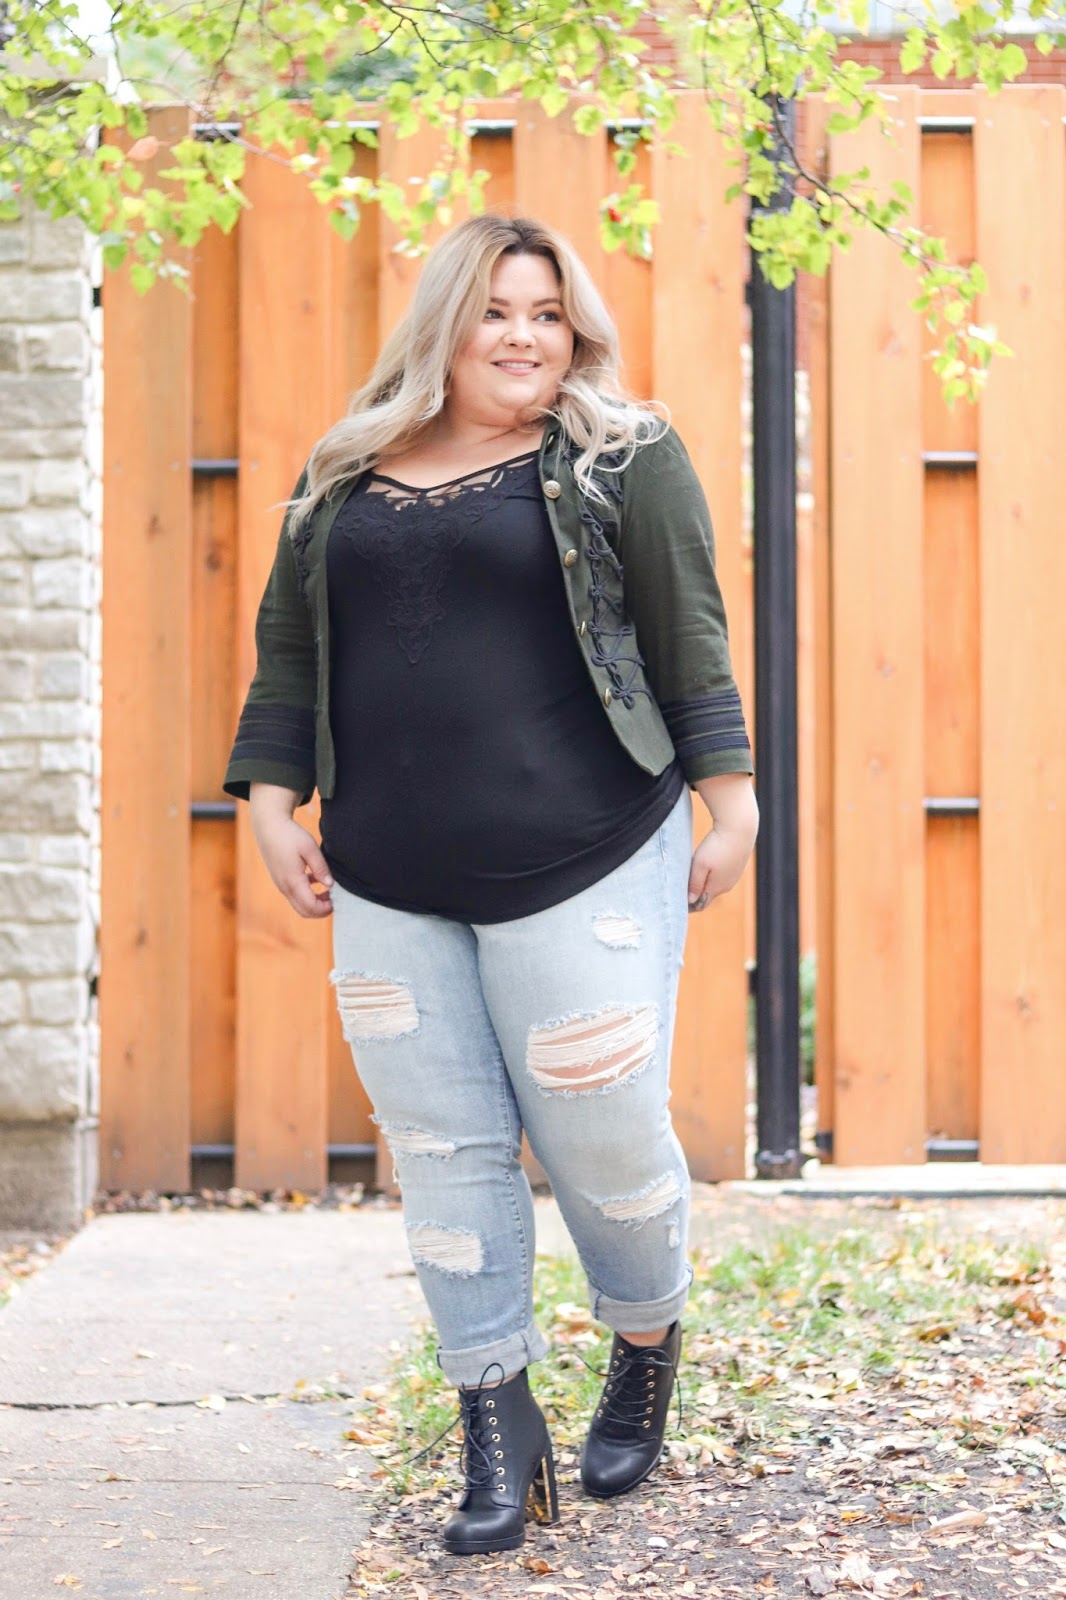 wide ankle combat boots, combat booties, natalie Craig, natalie in the city, plus size fashion blogger, Chicago fashion blogger, Chicago fashion, wide calf boots, wide fit boots, torrid, torrid boots, plus size boyfriend jeans, plus size military jackets, curves and confidence, affordable plus size clothing, gold heel shoes